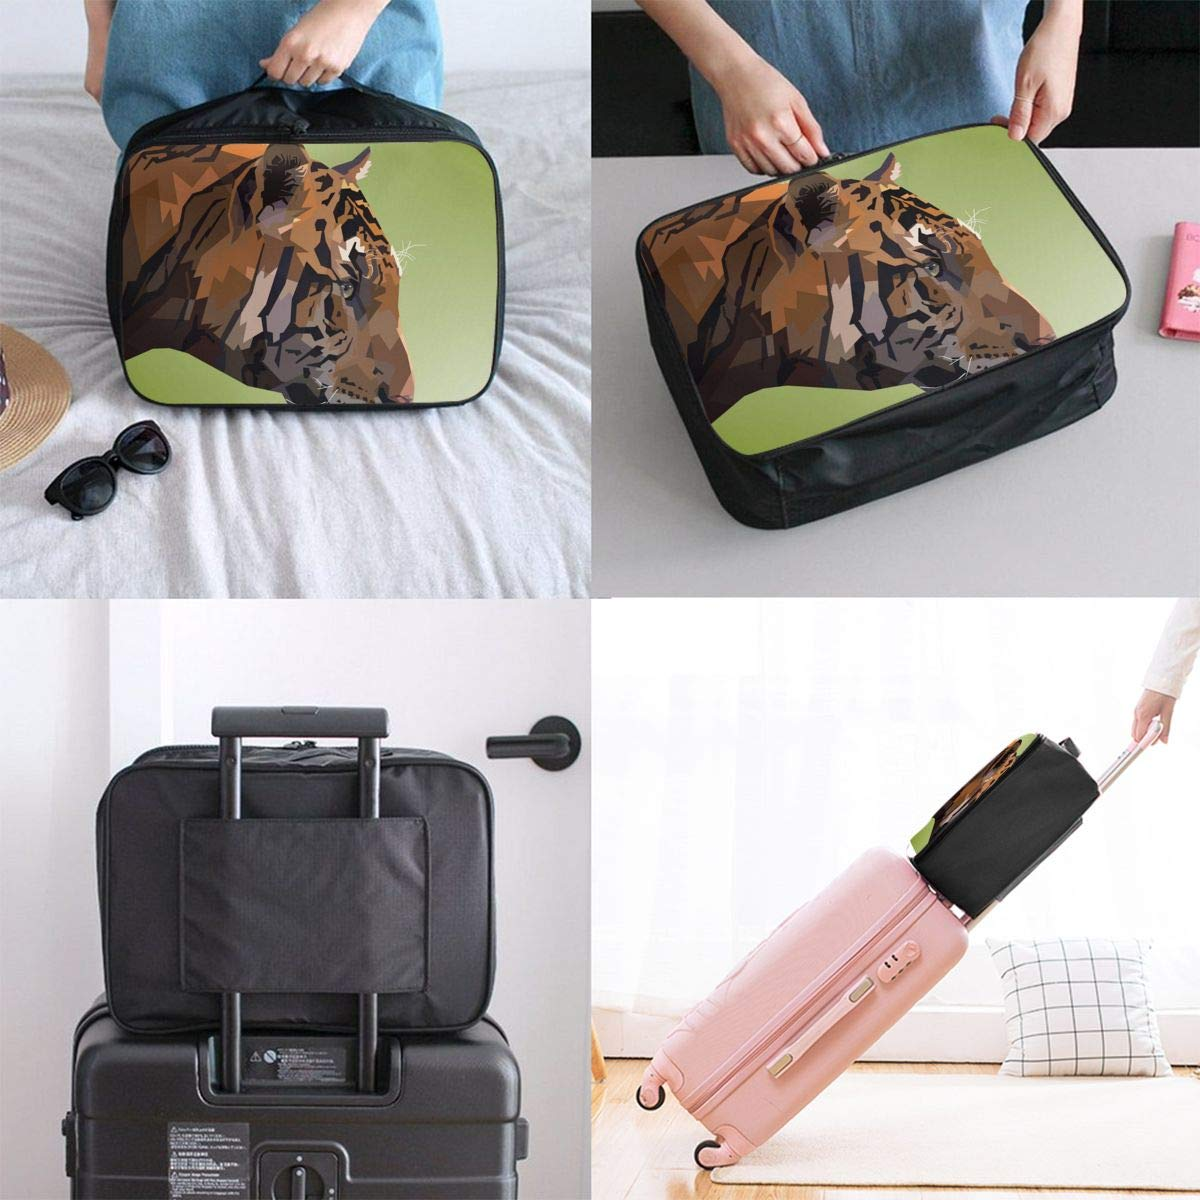 Geometry Nature Pop Art Tiger Travel Lightweight Waterproof Foldable Storage Carry Luggage Large Capacity Portable Luggage Bag Duffel Bag